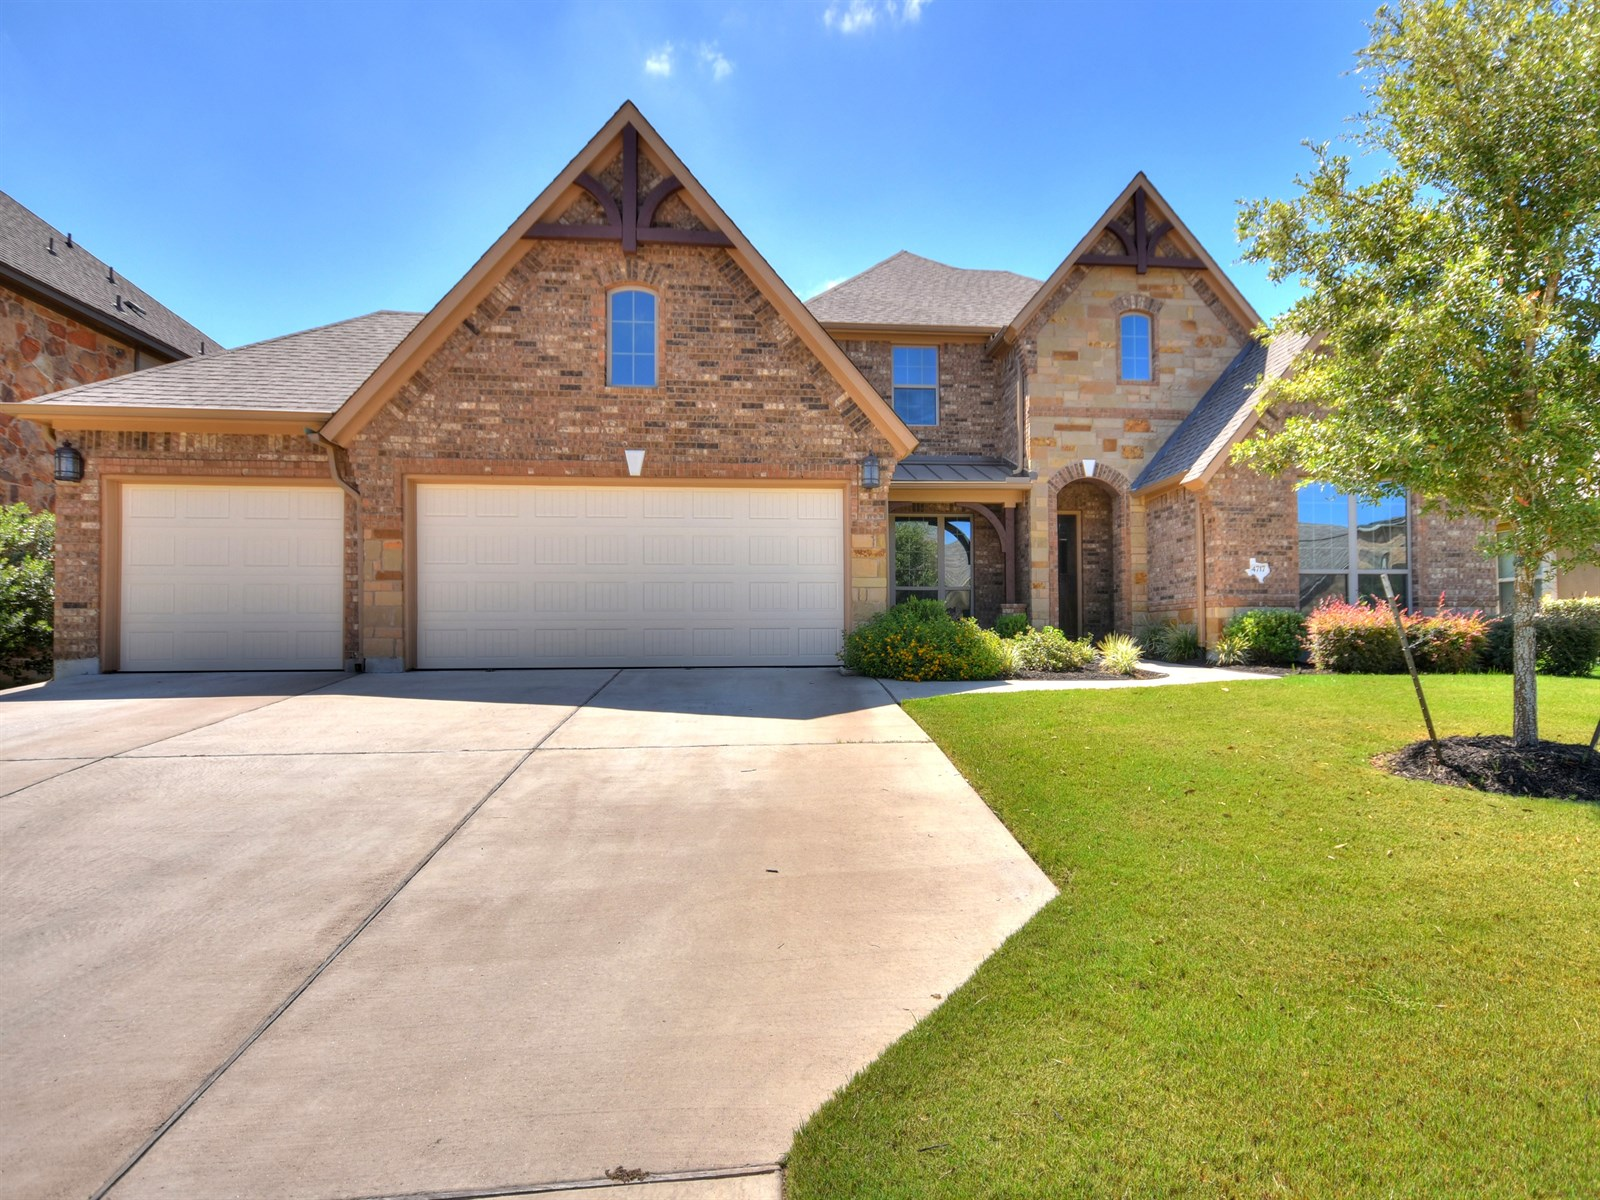 4717 Mont Blanc Austin TX 78738 | Falconhead West Home for Sale | Lori Wakefield REALTOR | Keller Williams Lake Travis